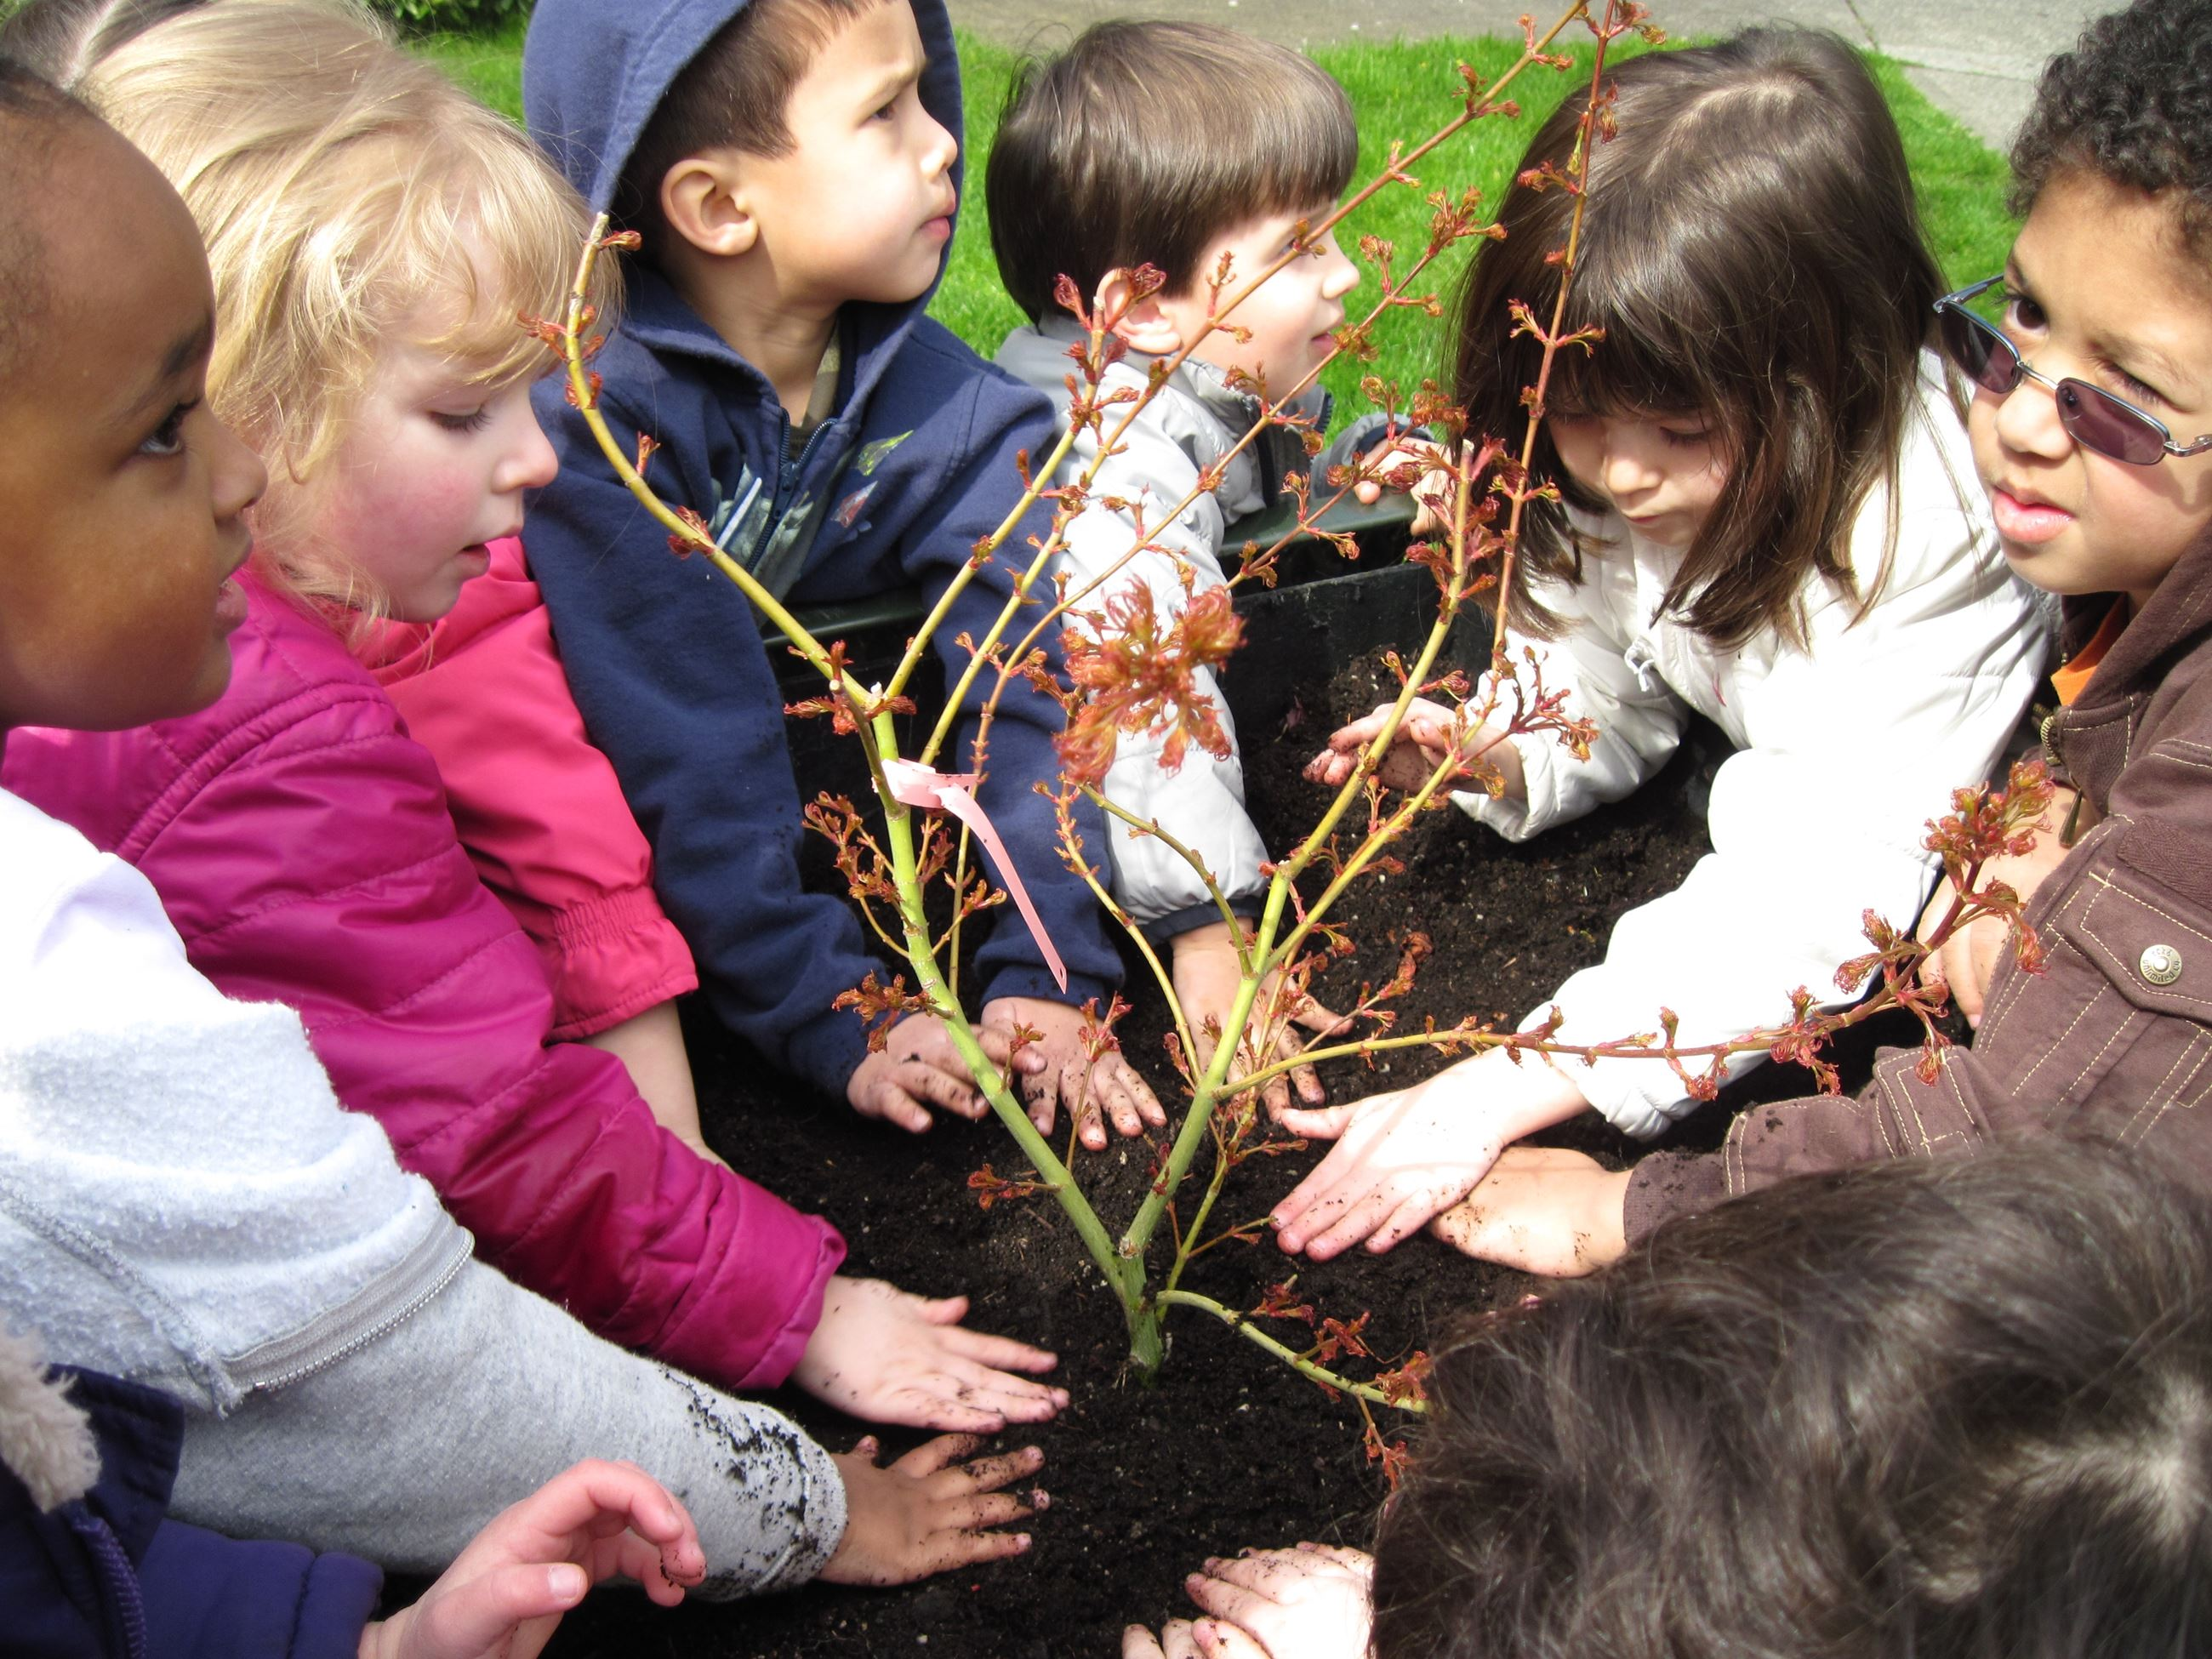 Eight children patting soil around plant for Earth Day